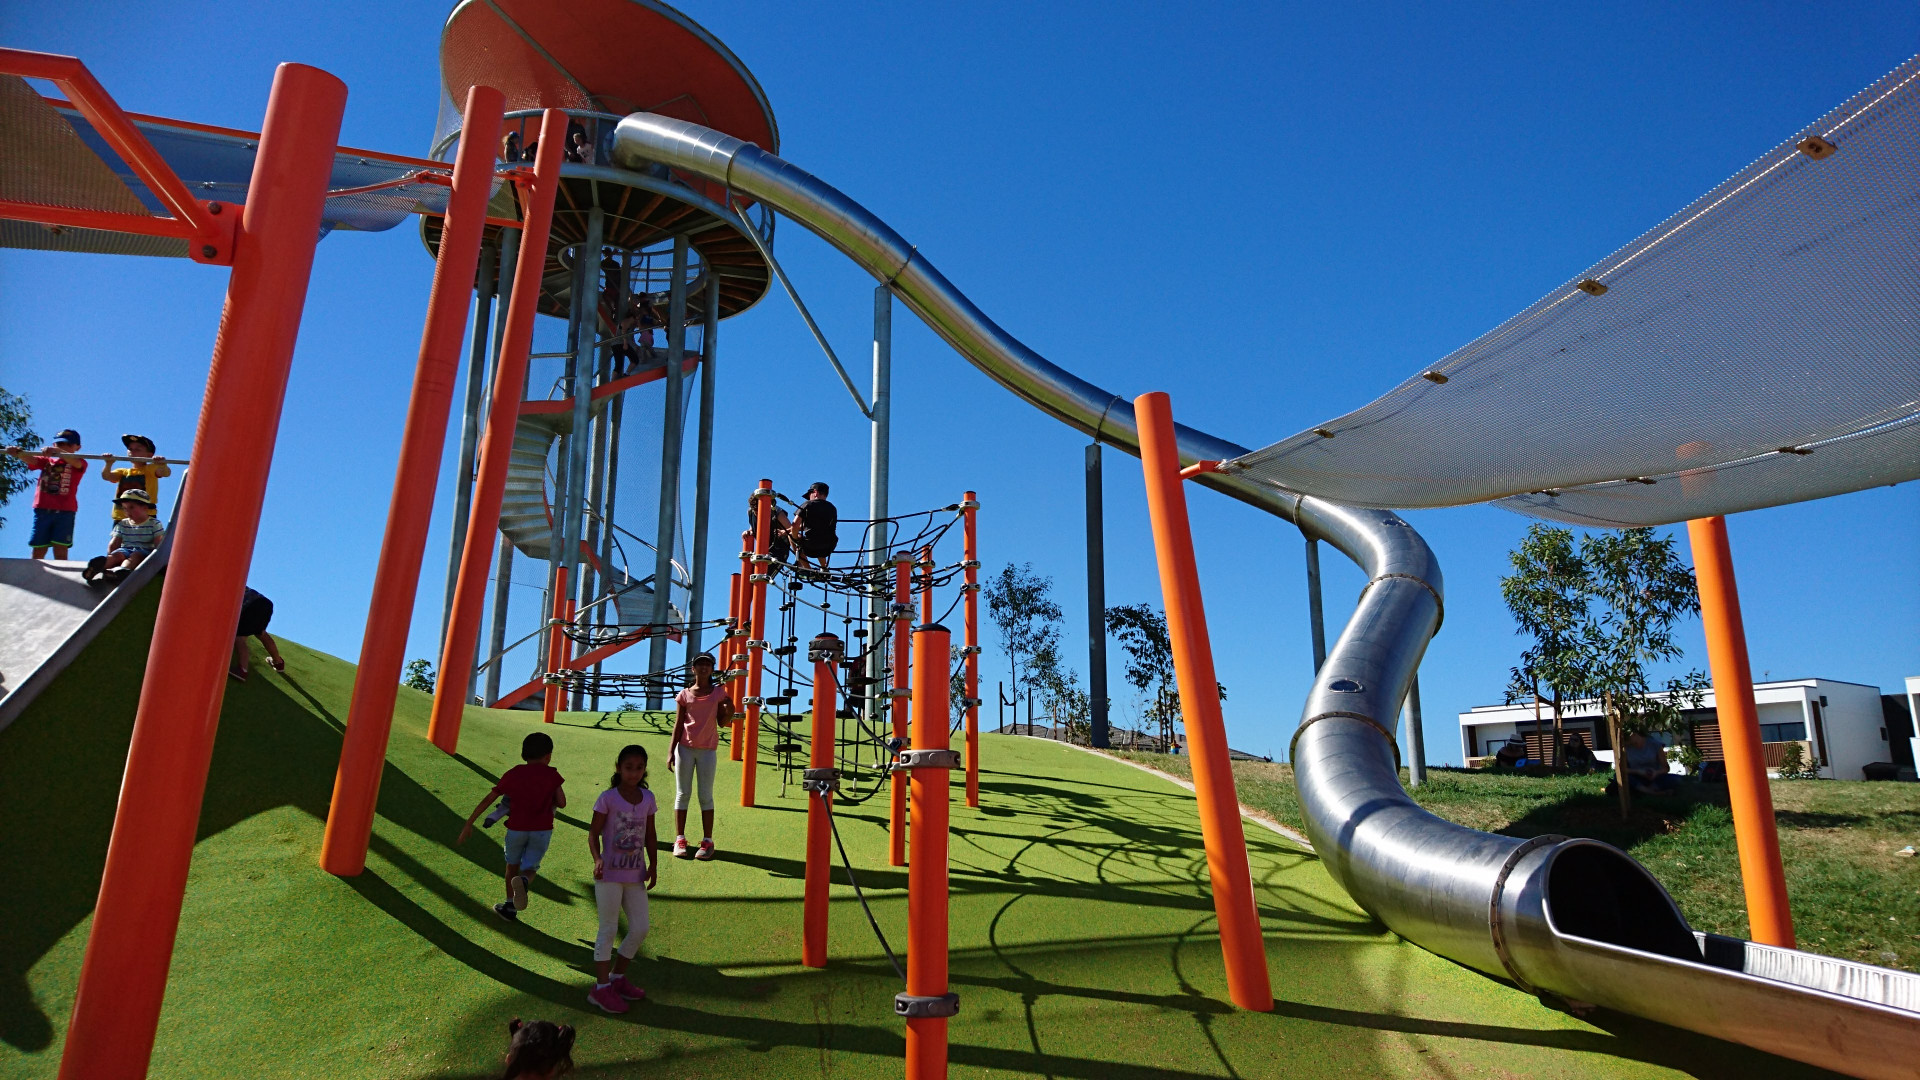 Mega slide at Altrove Hilltop Park